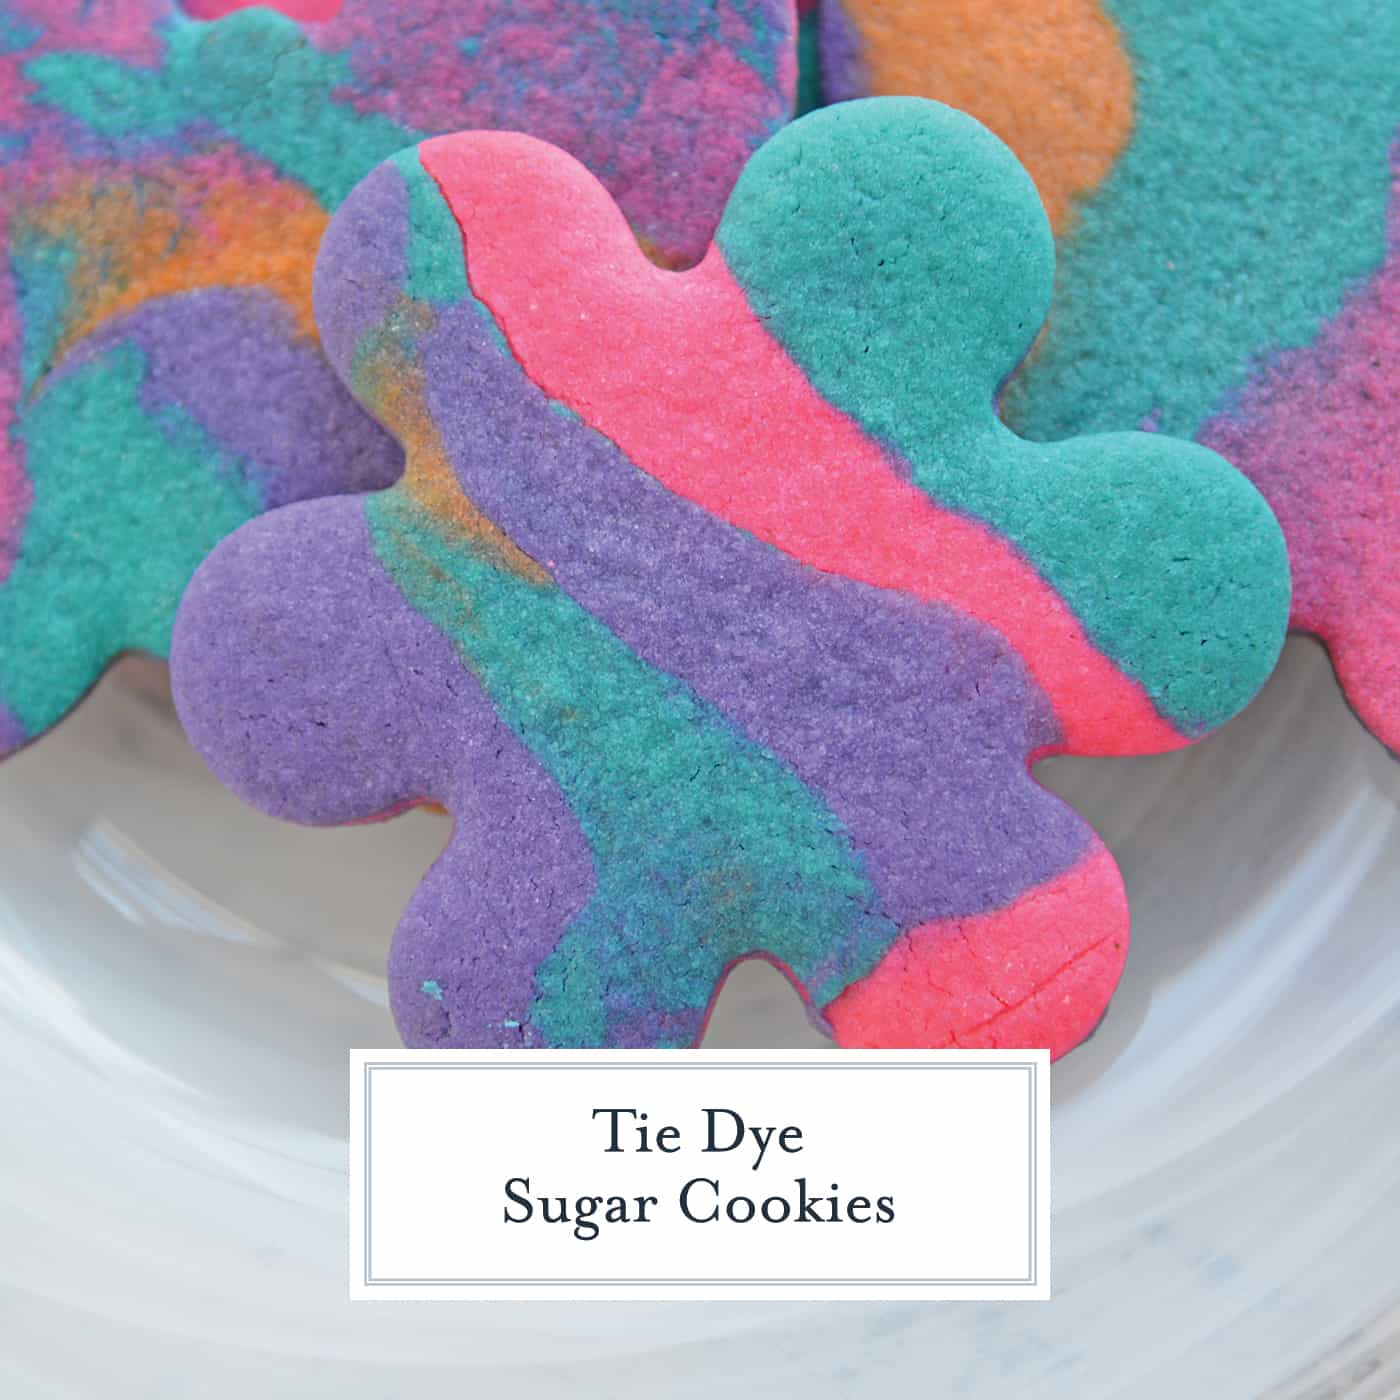 4aac47acfd6a Learn how to make these Tie Dye Sugar Cookies. Easy to make rolled sugar  cookie recipe that are already decorated straight from the oven!